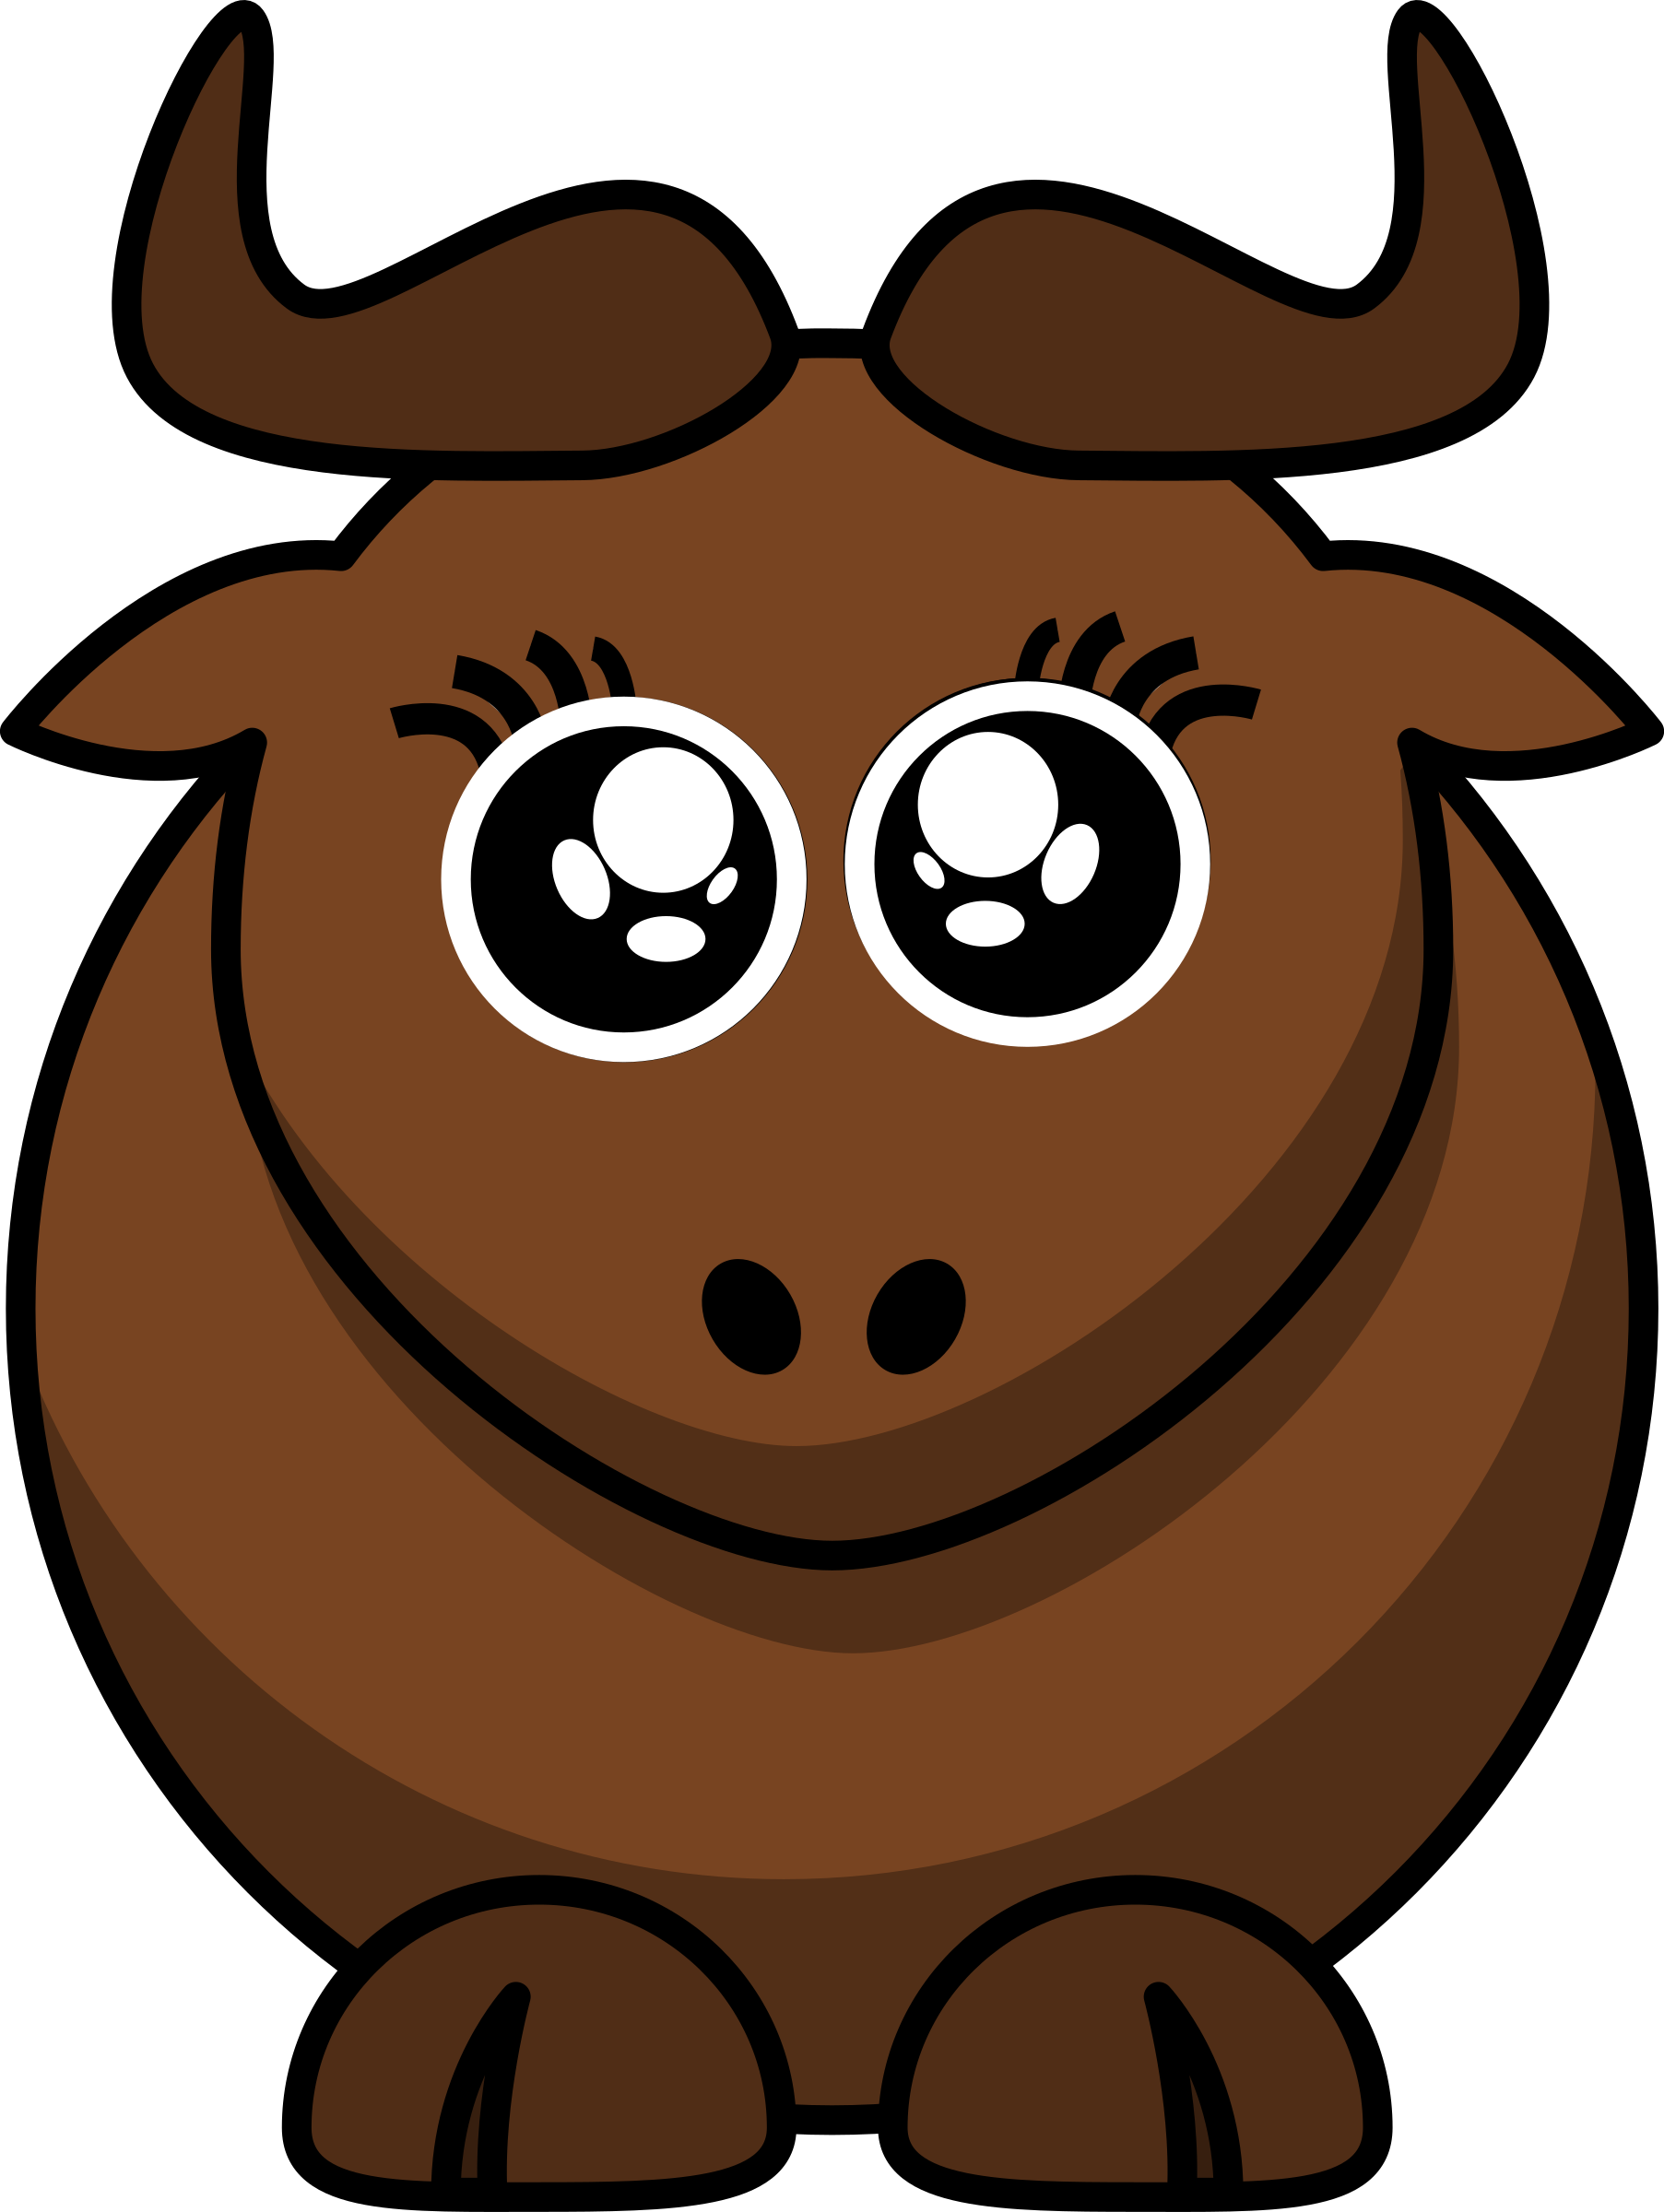 Cartoon Gnu Eyes2 by ephemeralwaves